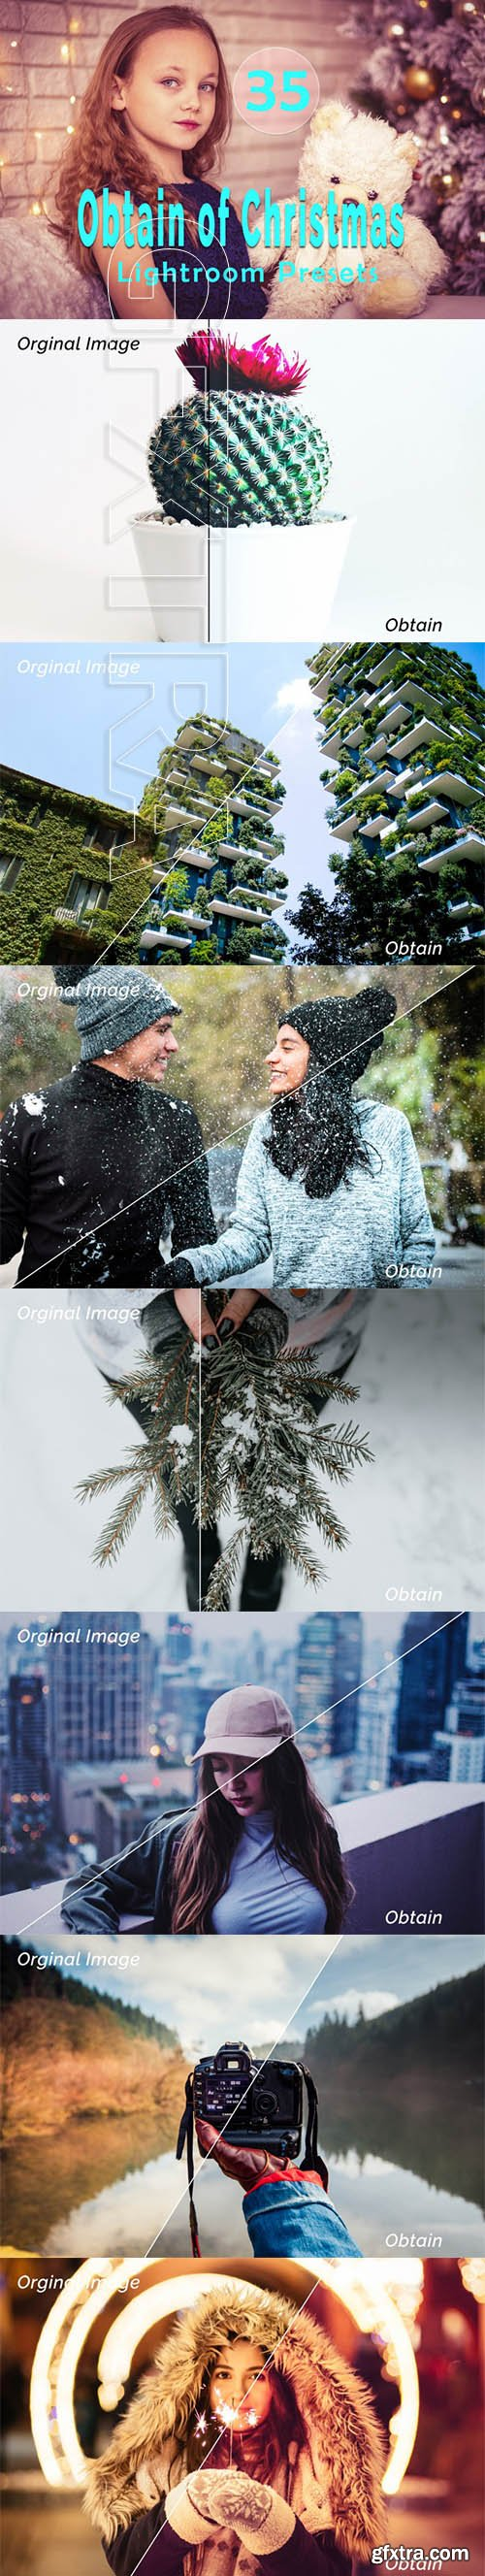 Obtain of Christmas Lightroom Presets